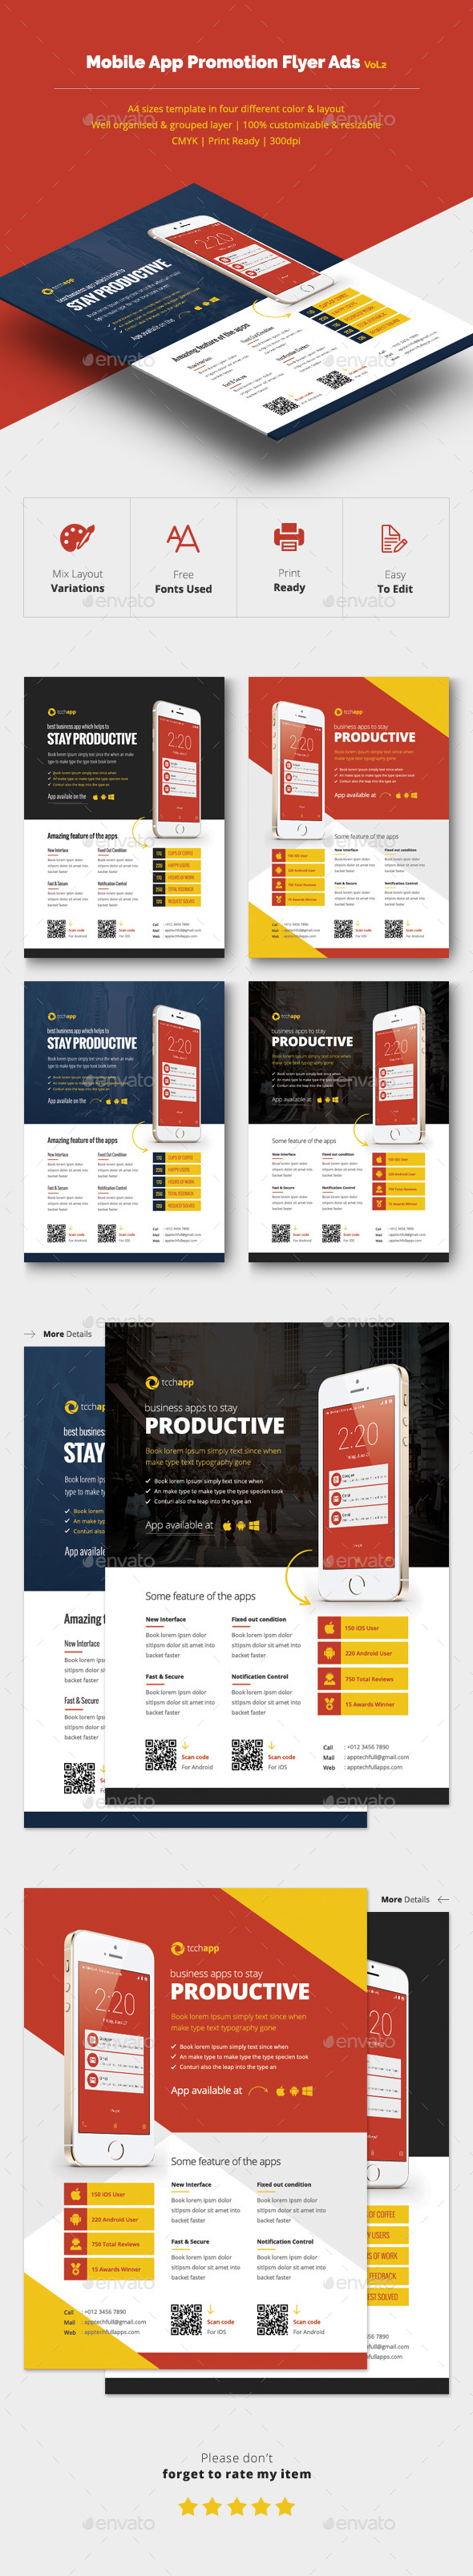 Mobile App Promotion Flyer Ads Vol.2 - Corporate Flyers